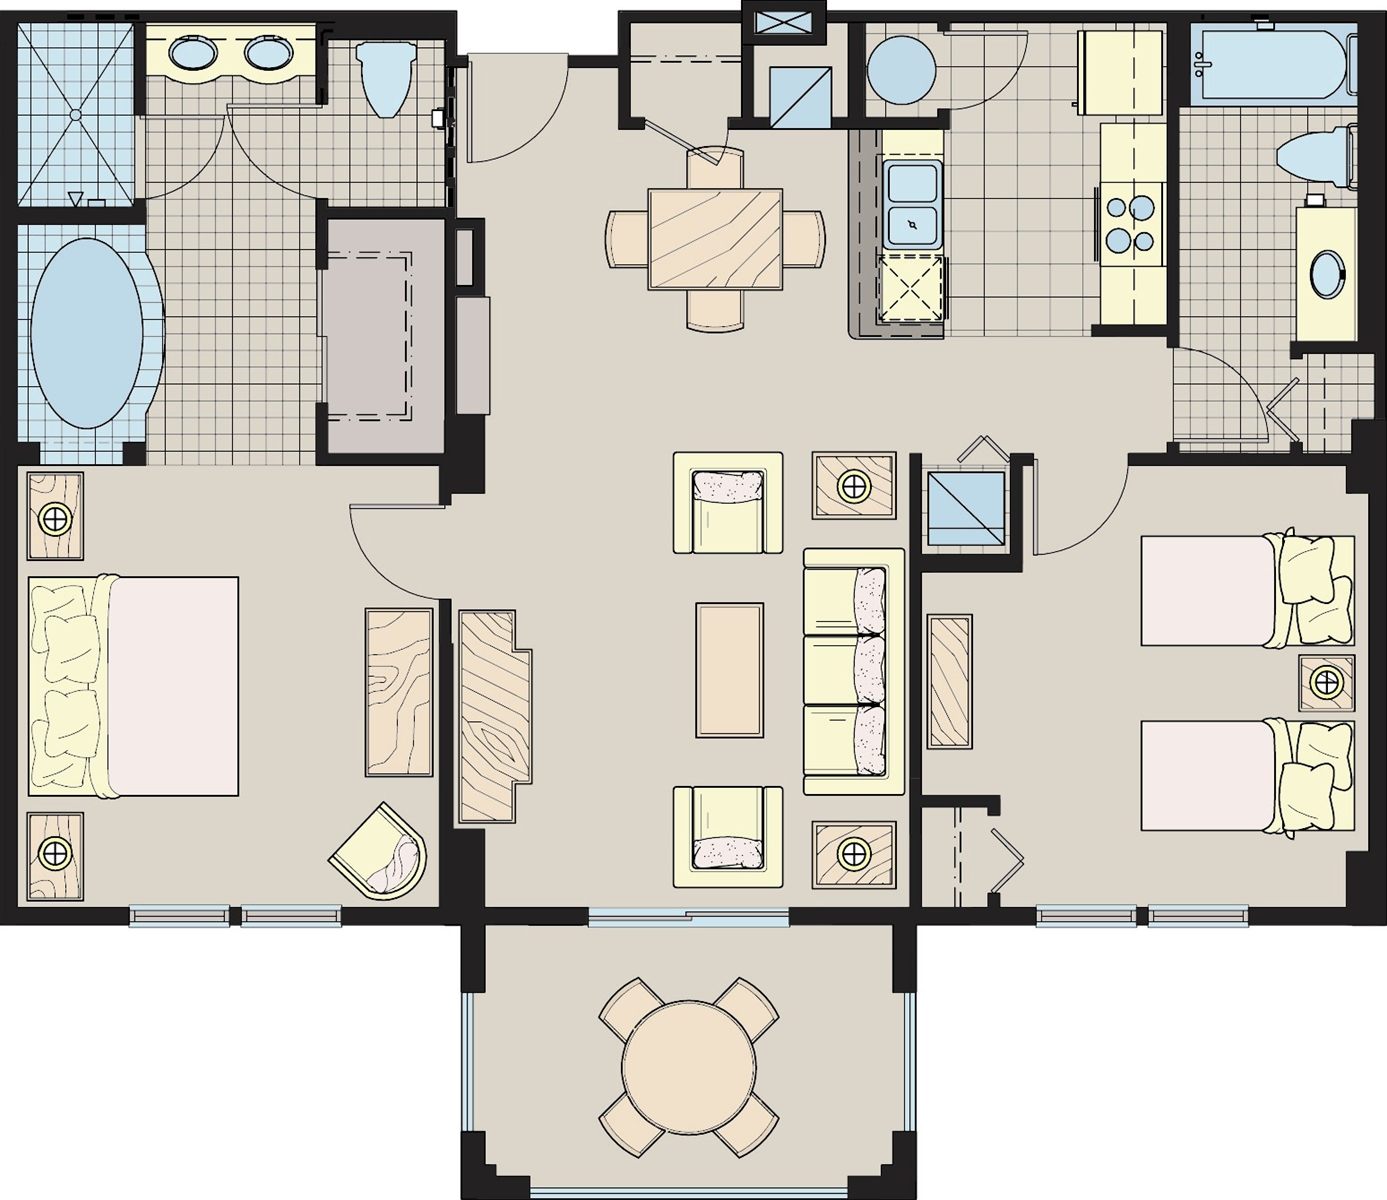 Floor Plan for 2403 2Bedroom/2Bath Comfortable Condo with South Facing Sunny Covered Patio at The Lake Buena Vista Resort Village and Spa - Shopping Mall View